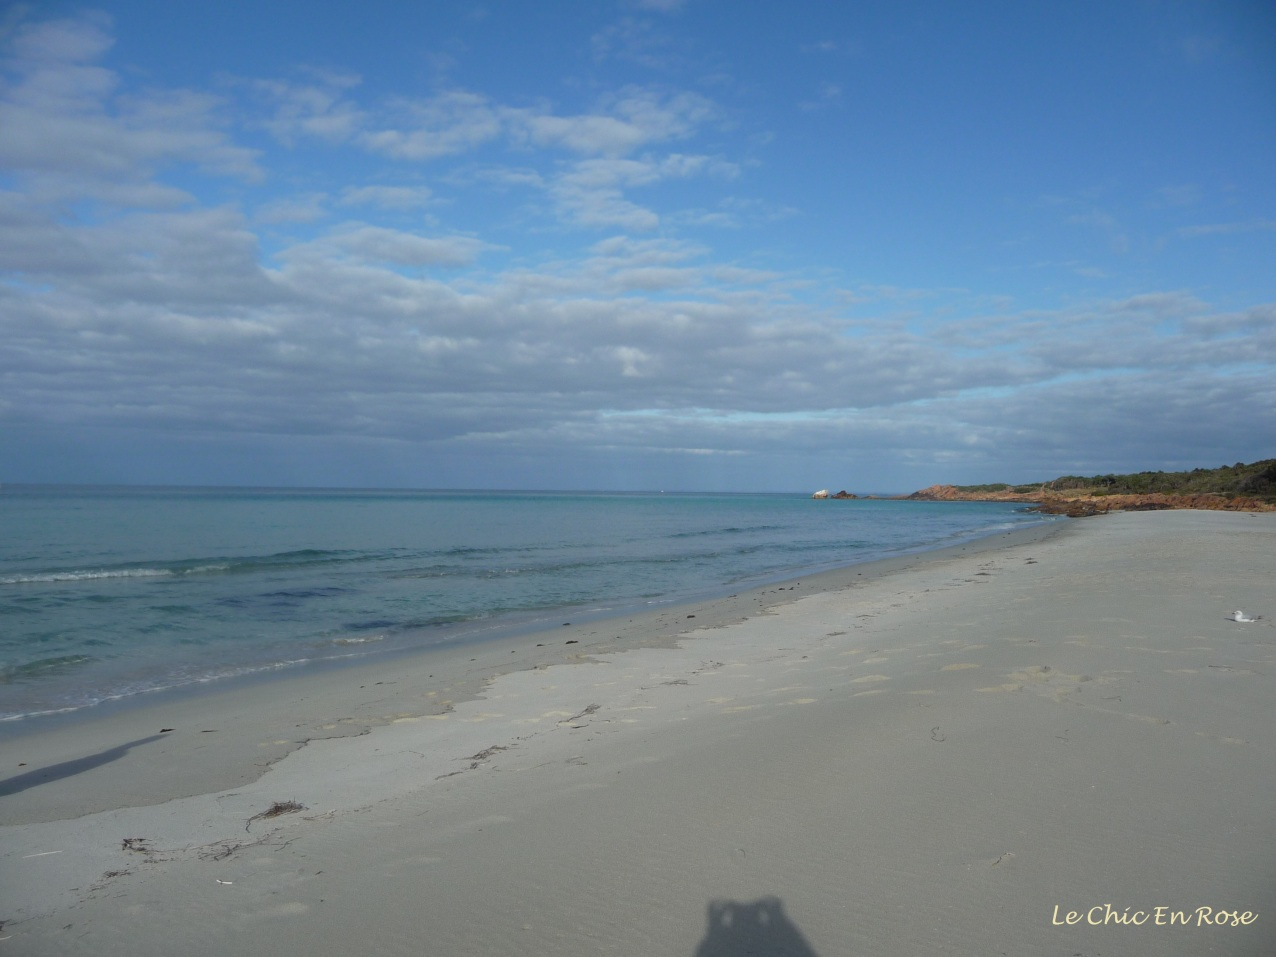 The peaceful and serene Geographe Bay at Meelup Beach